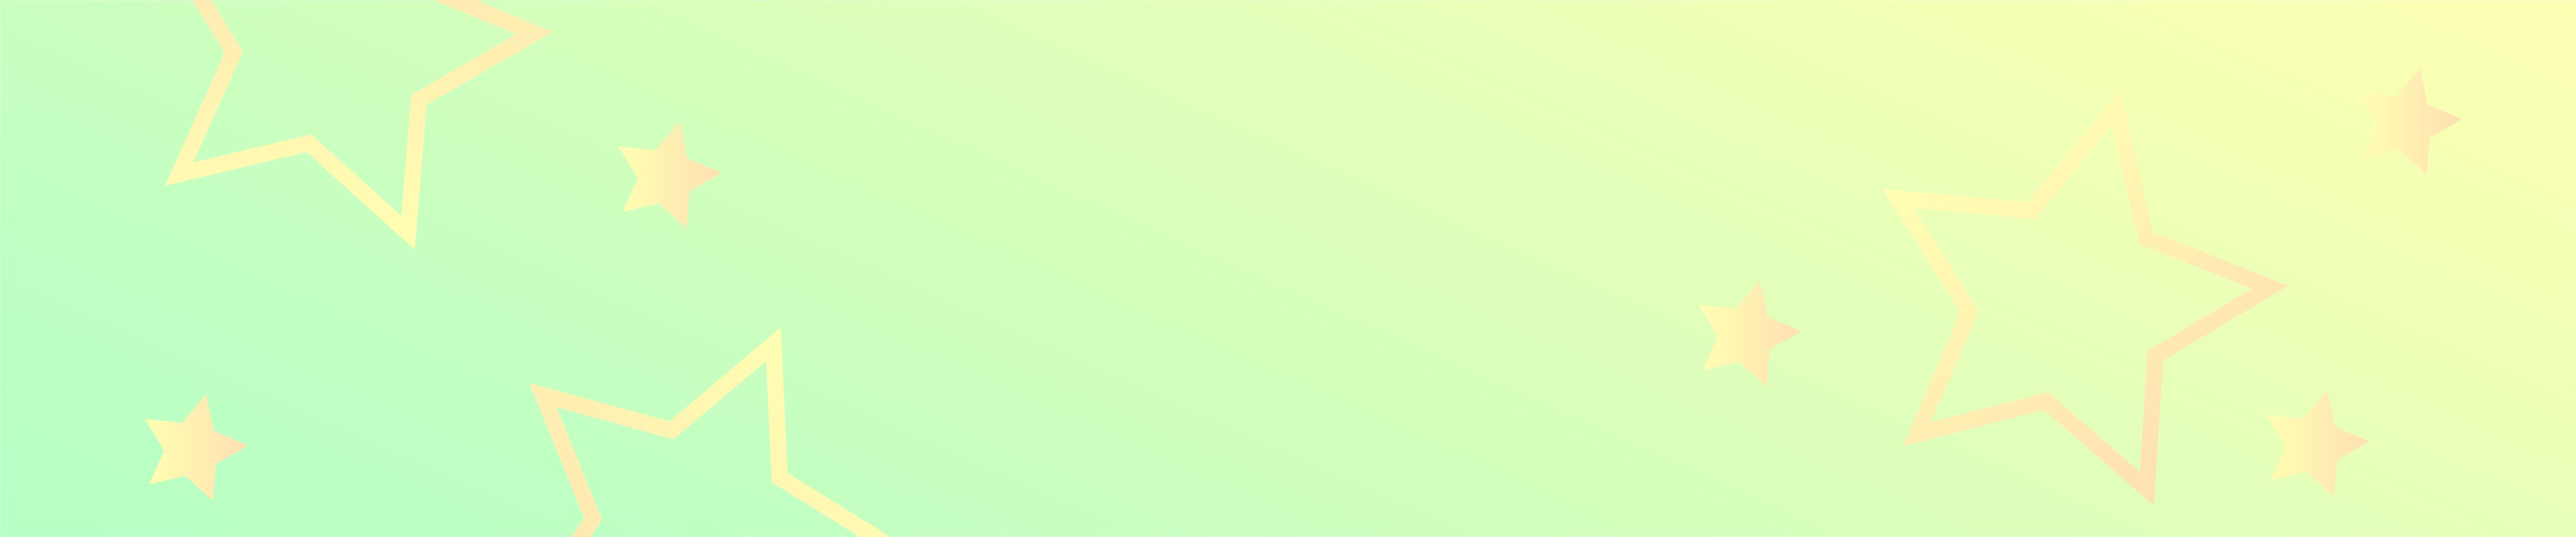 lime_stars2x.png